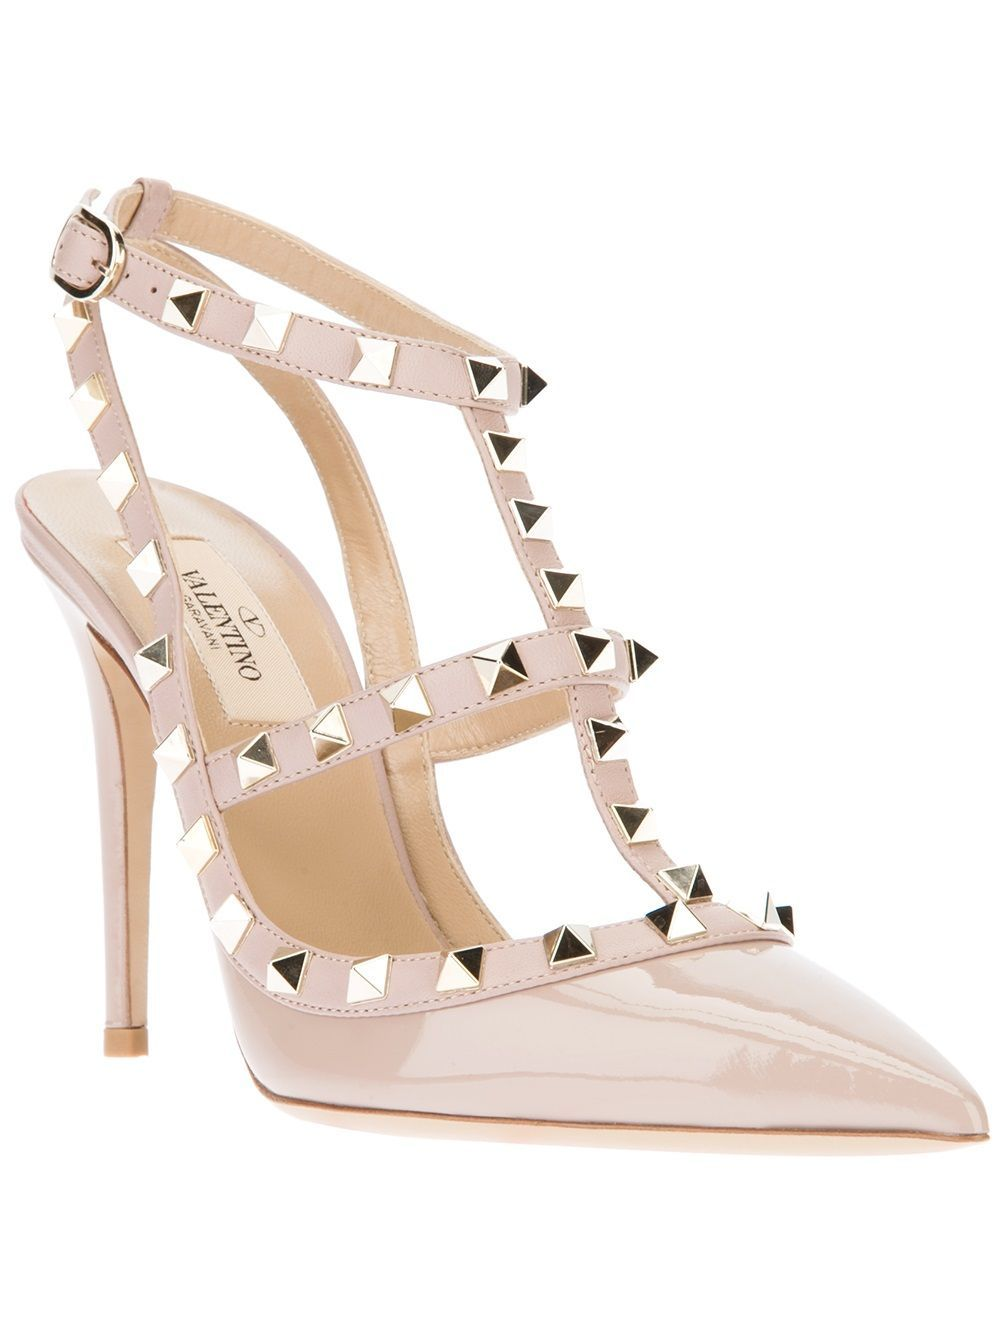 36d6f2129eb832 Valentino Rockstud Patent Leather pump Beige.  3  3  3 these shoes ...